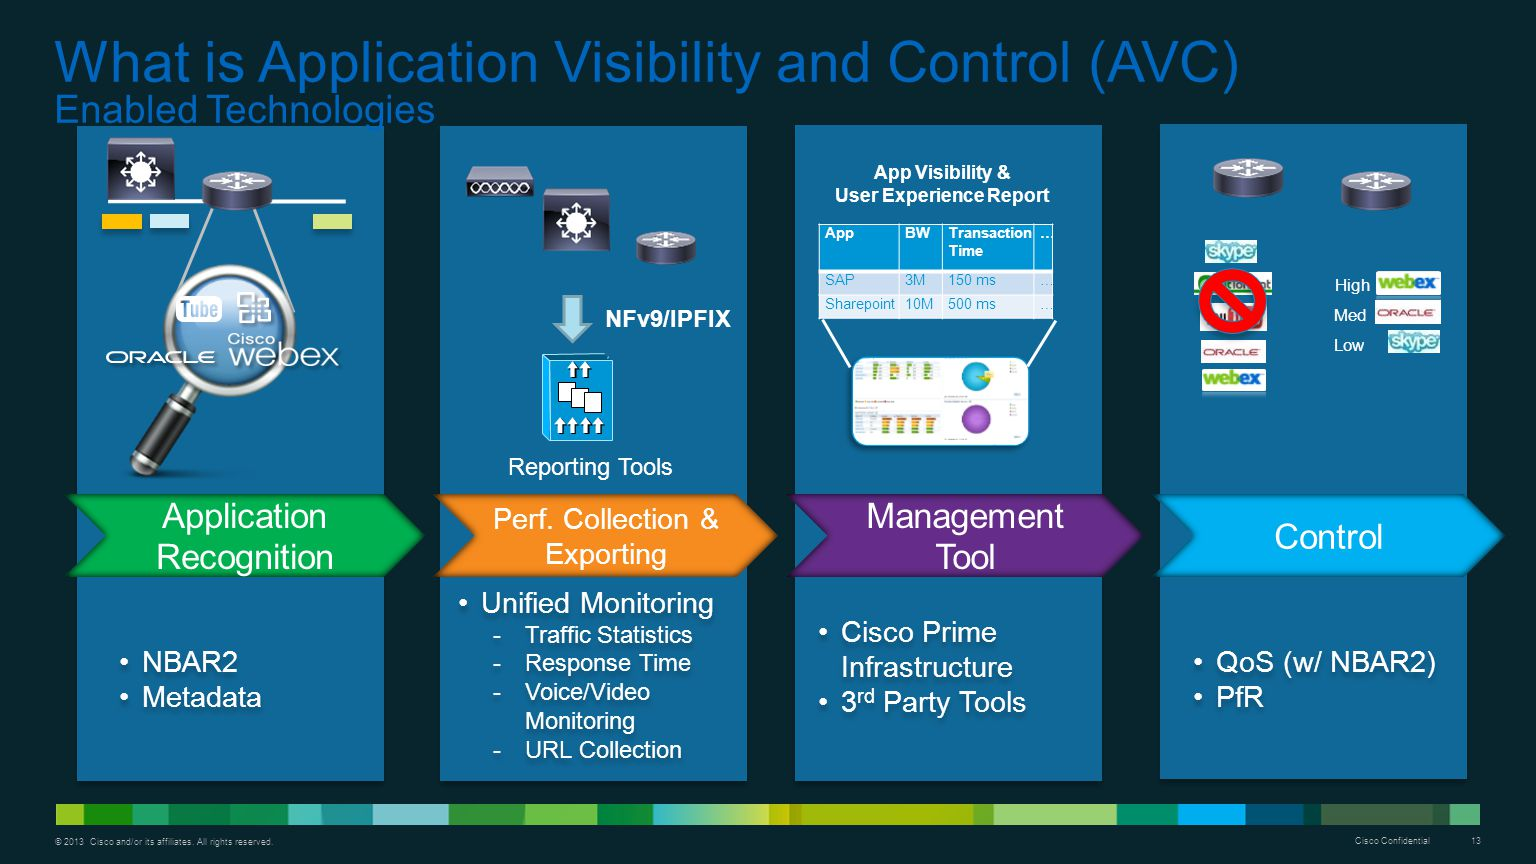 What is Application Visibility and Control (AVC) Enabled Technologies